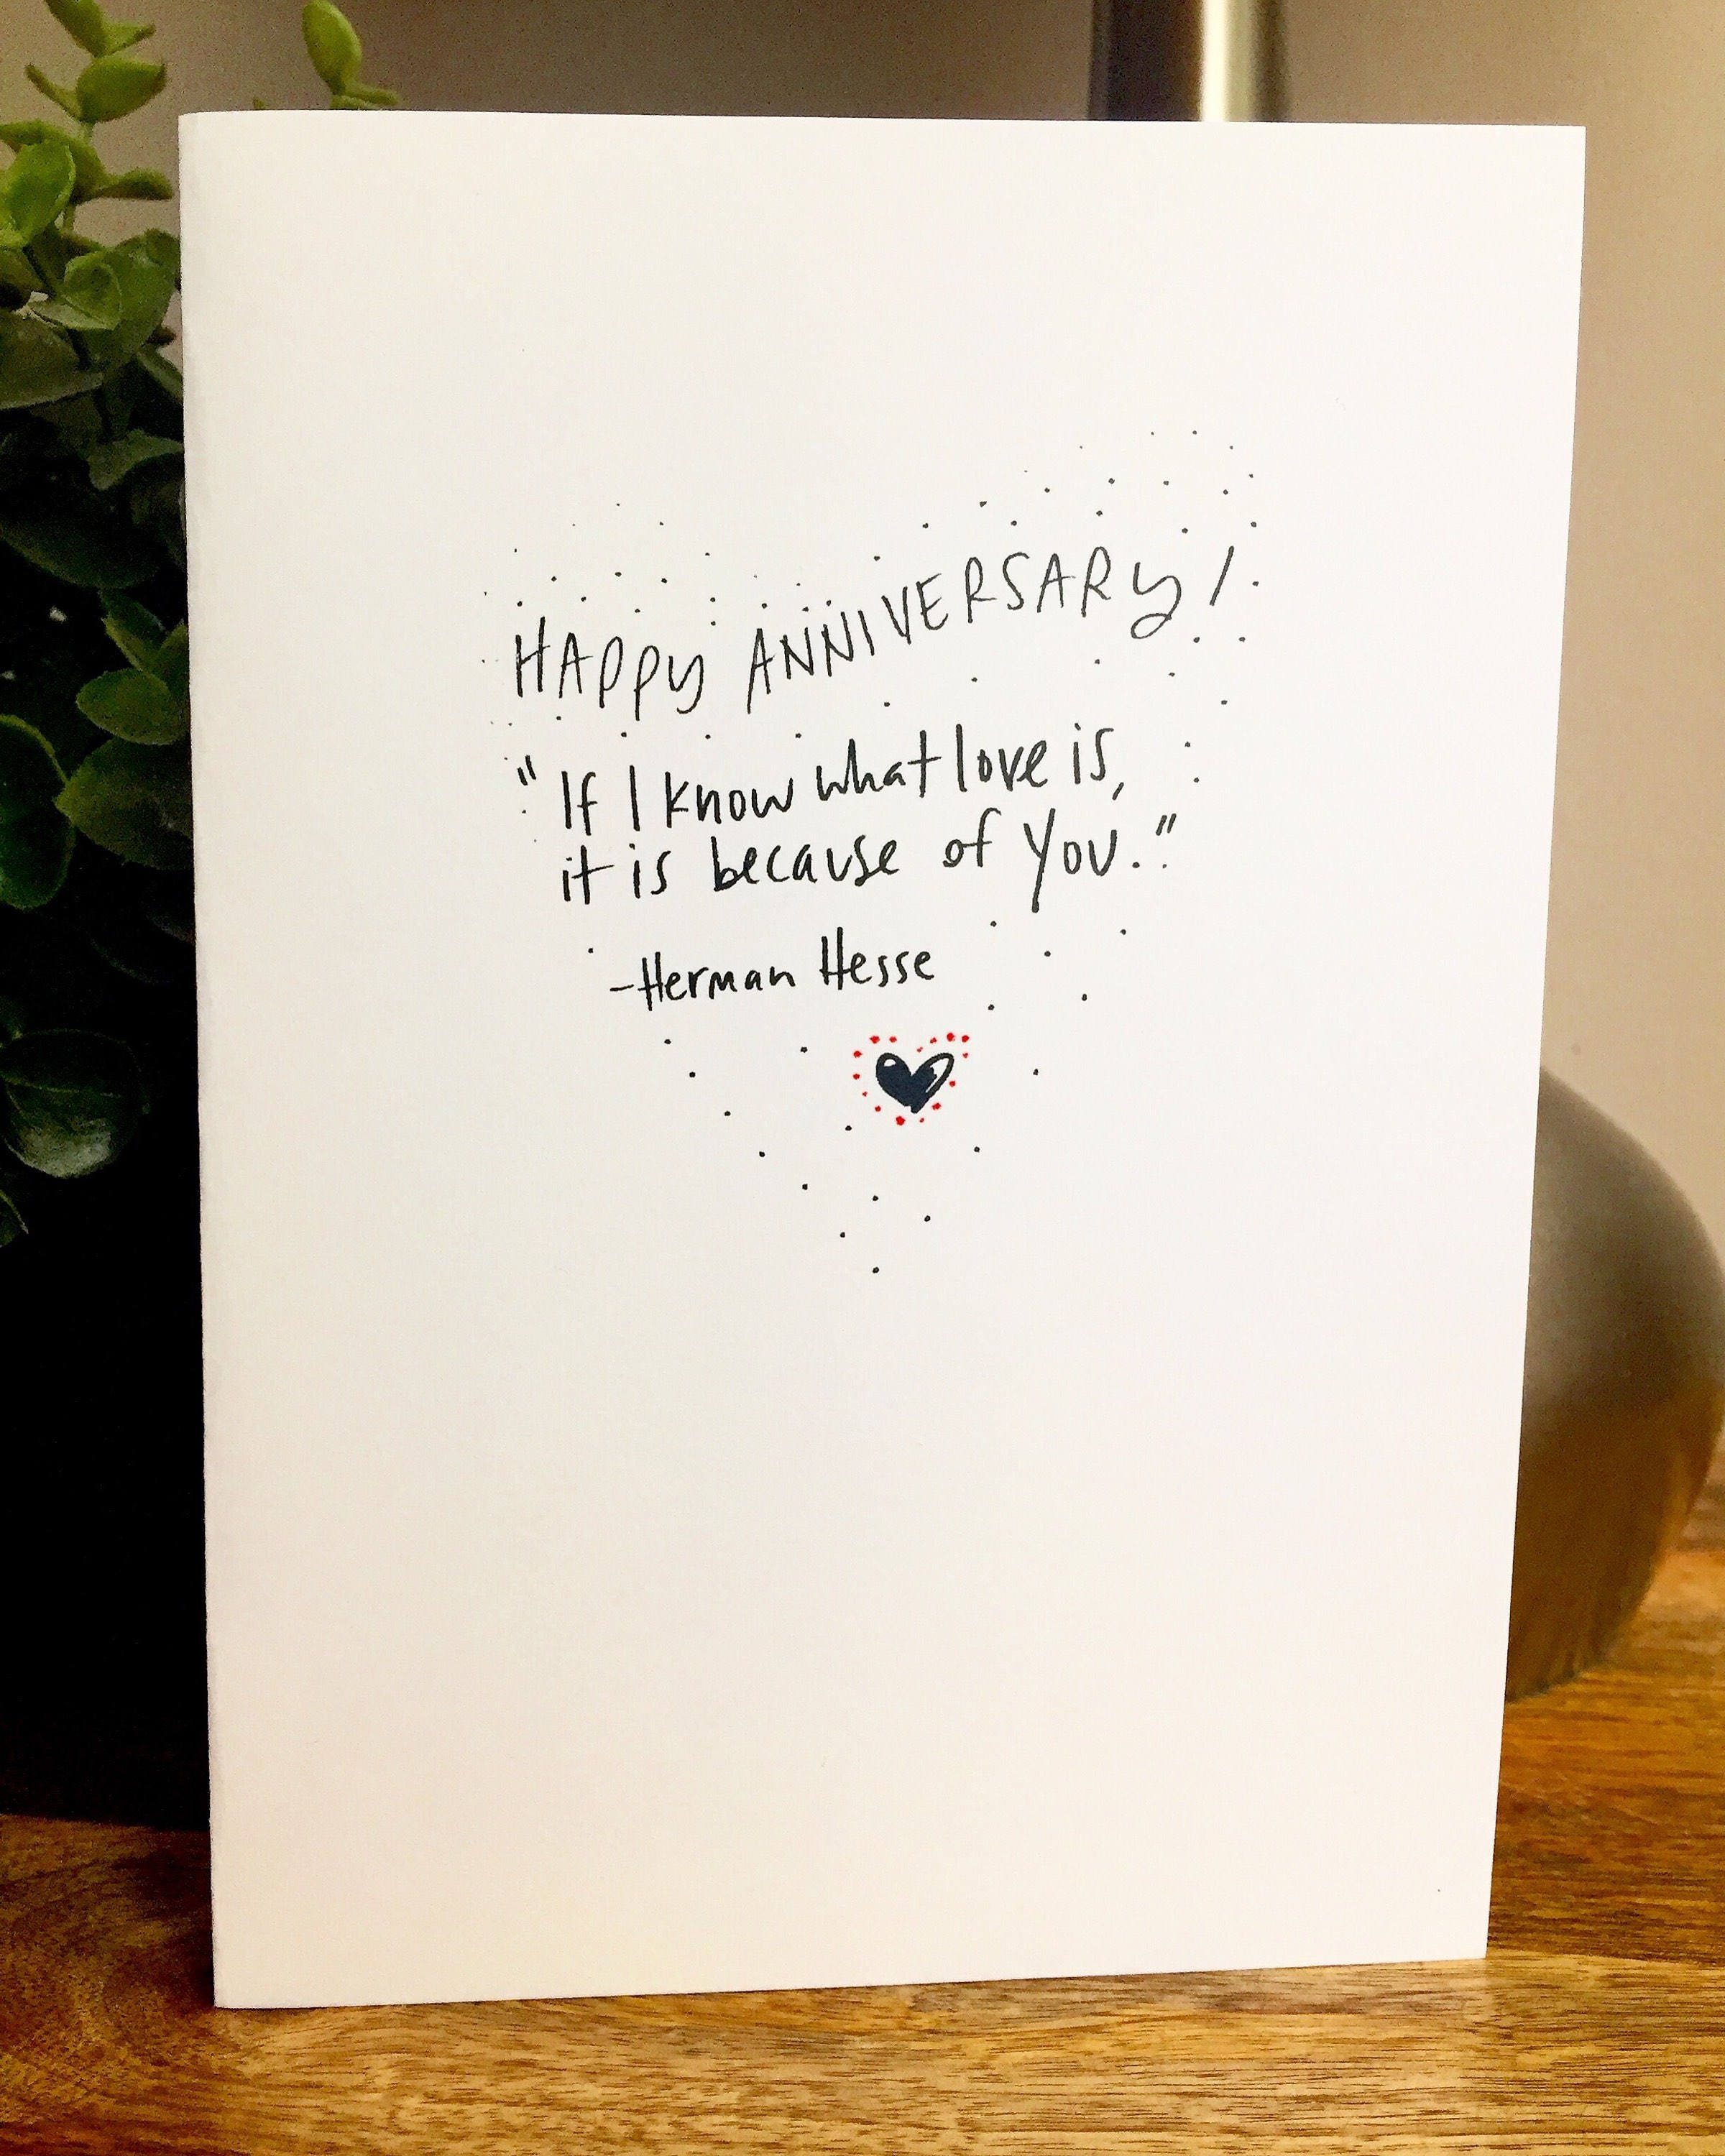 1 Year 12 Months 52 Weeks 365 Days Quotes: I Know What Love Is, One Year Anniversary Card For Her